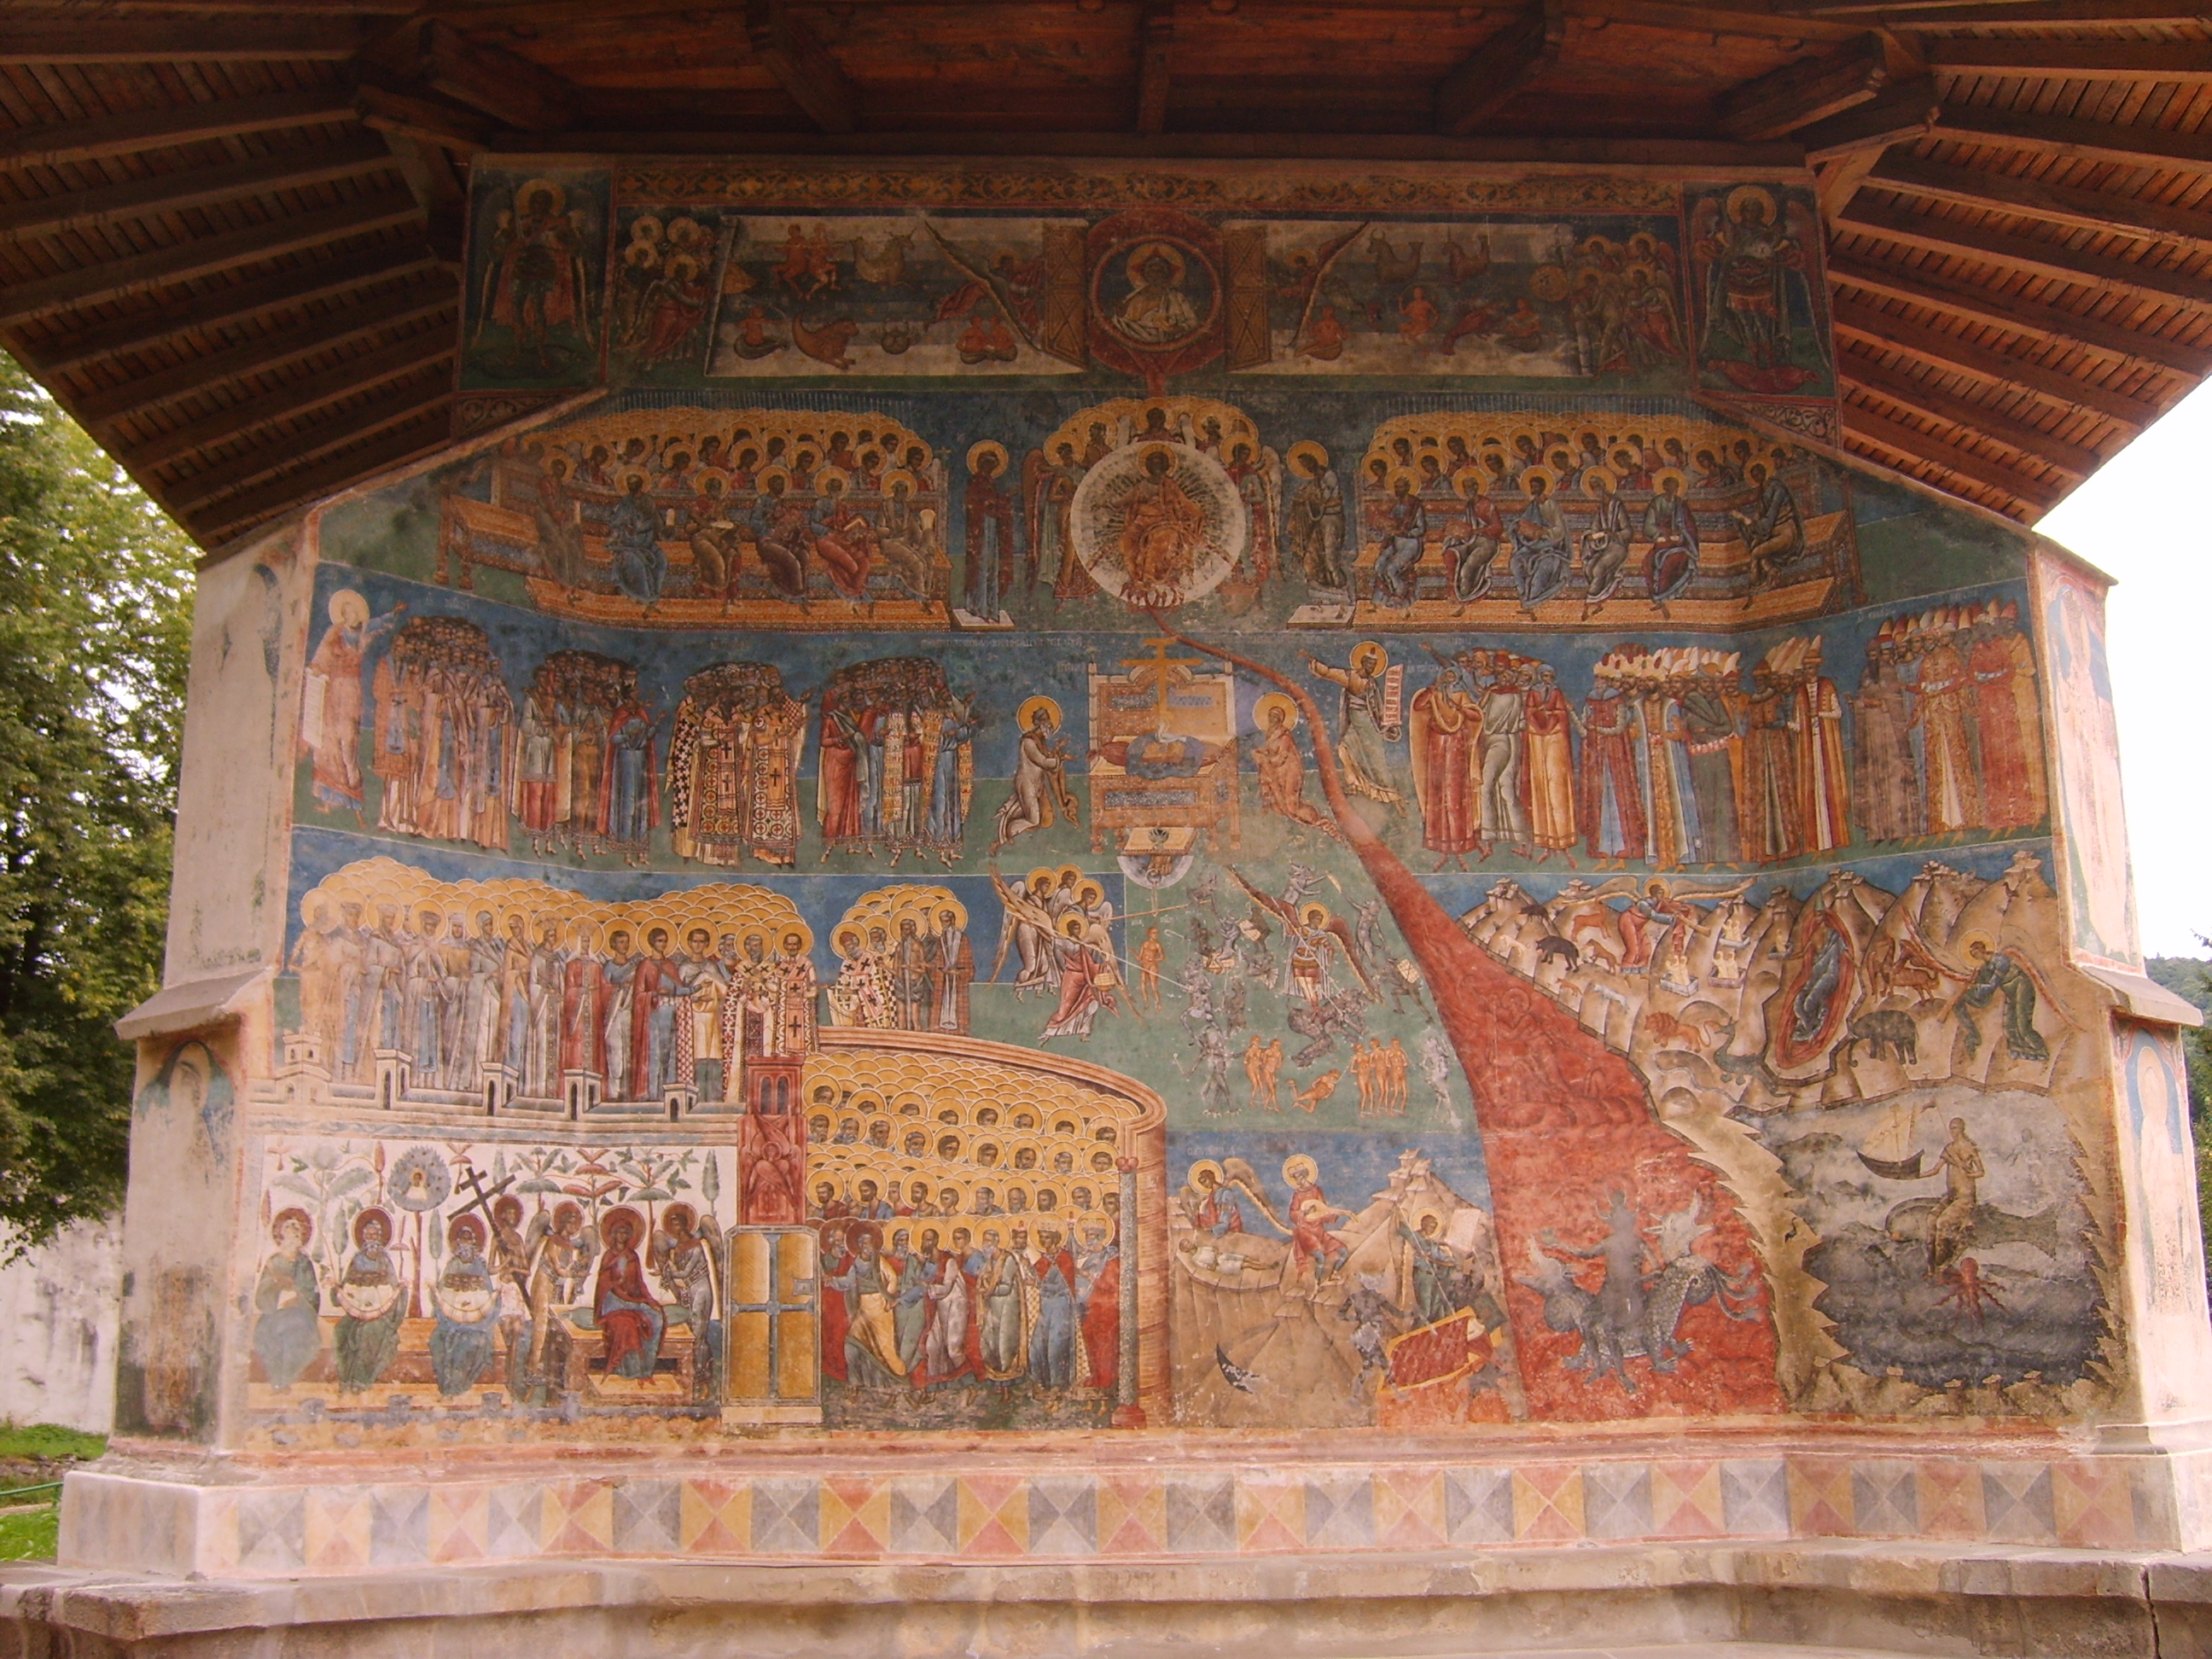 The Last Judgement, painting Orthodox Byzantine style on the walls of the monastery Voroneţ built in 1488 in Romania.